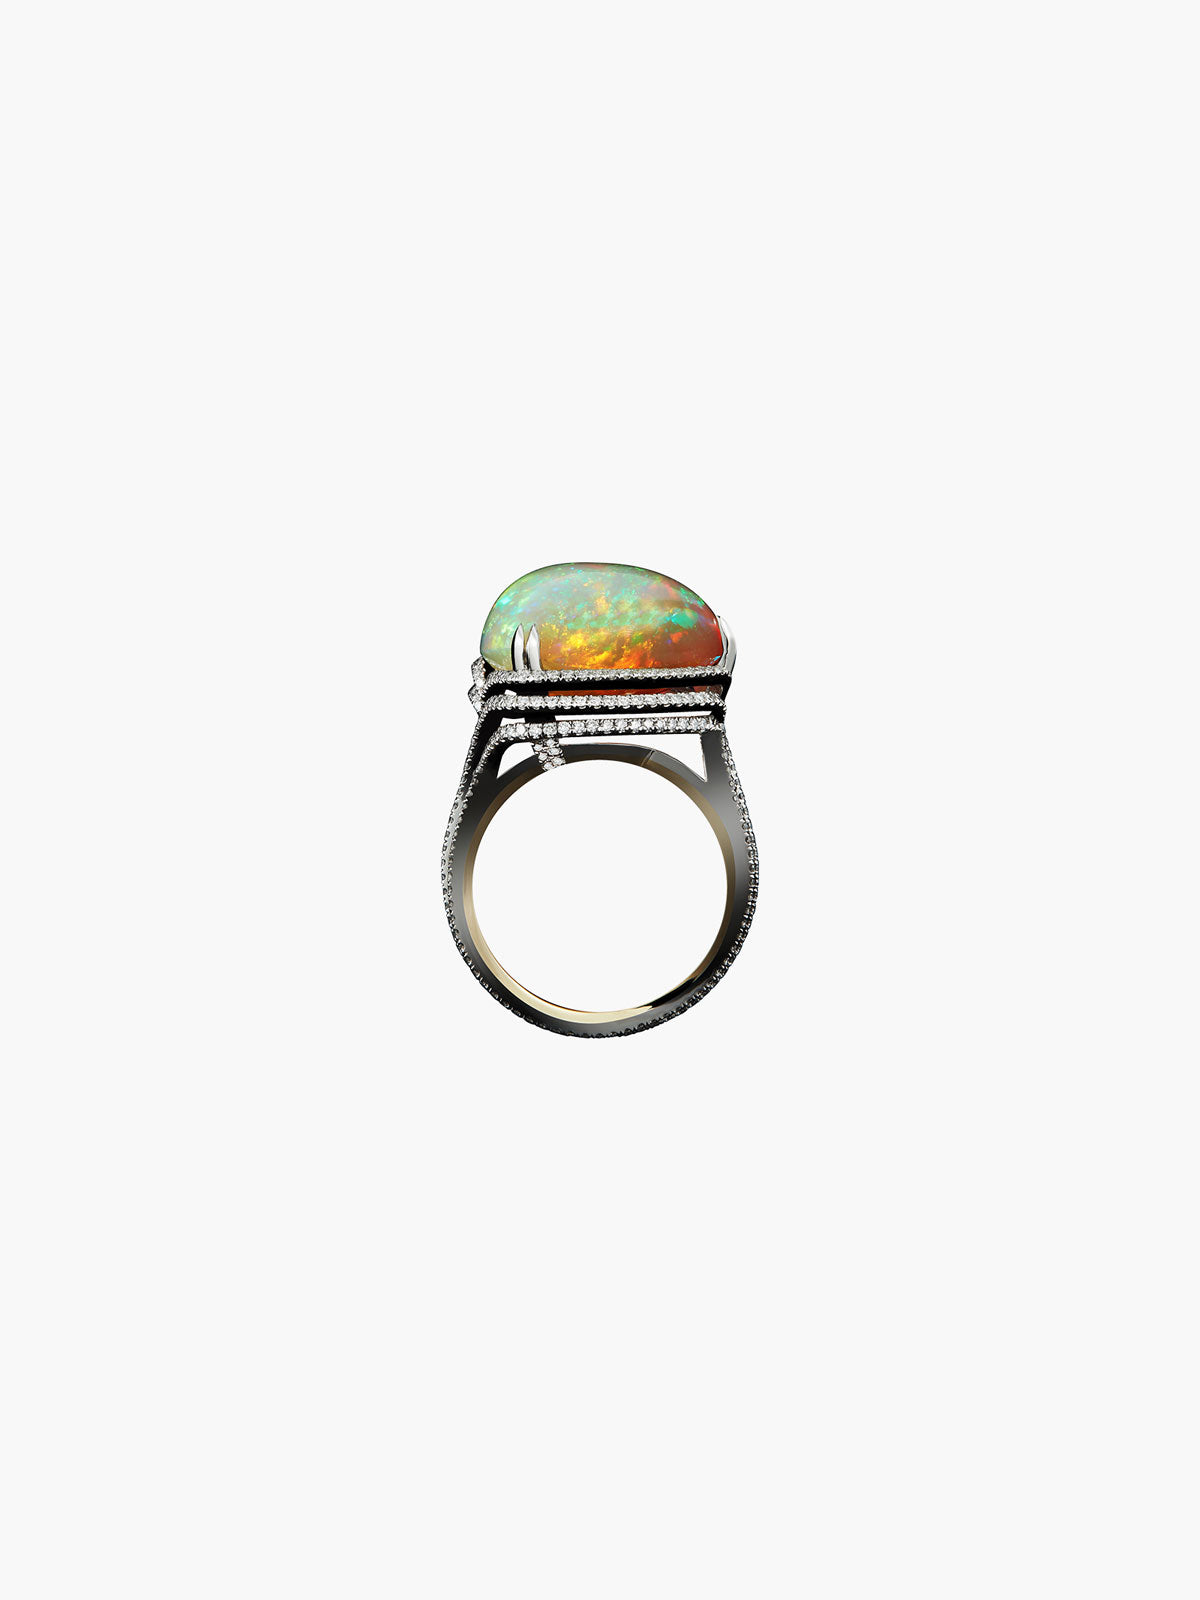 Checkerboard-Harlequin Opal Diamond Ring Checkerboard-Harlequin Opal & Diamond Ring